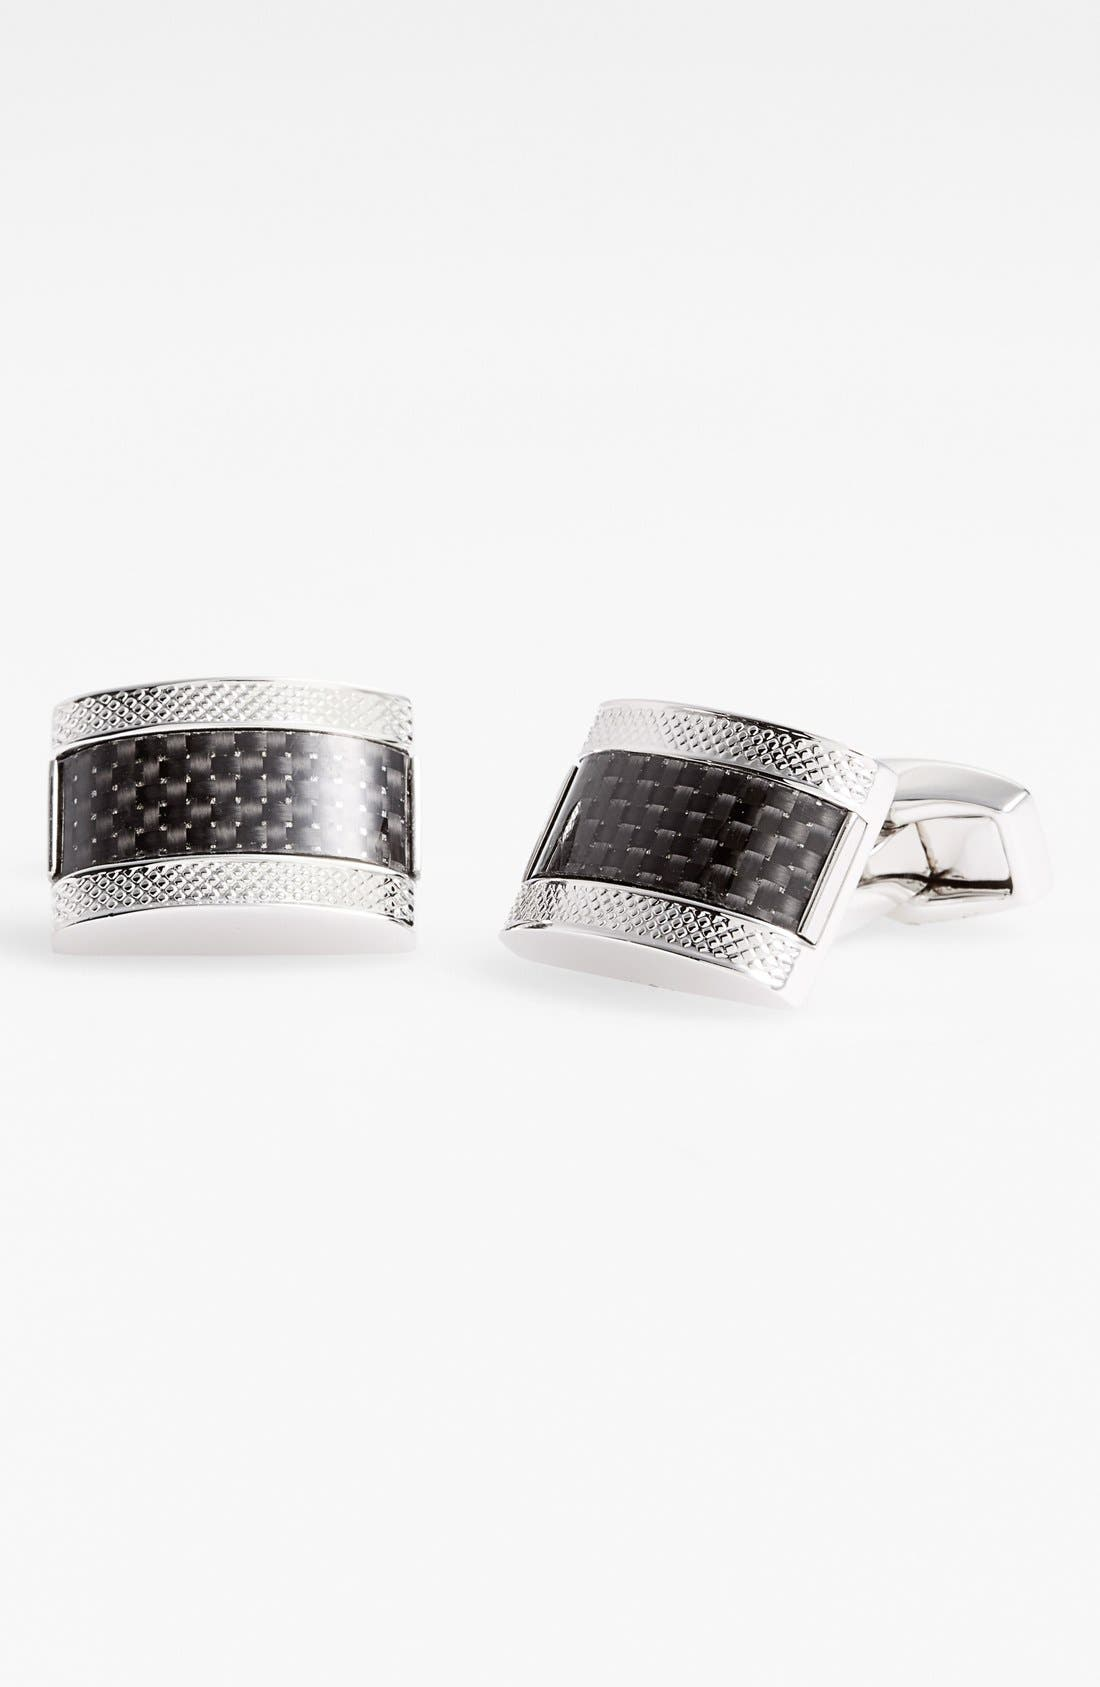 Carbon Fiber Cuff Links,                             Main thumbnail 1, color,                             Rhodium/ Black